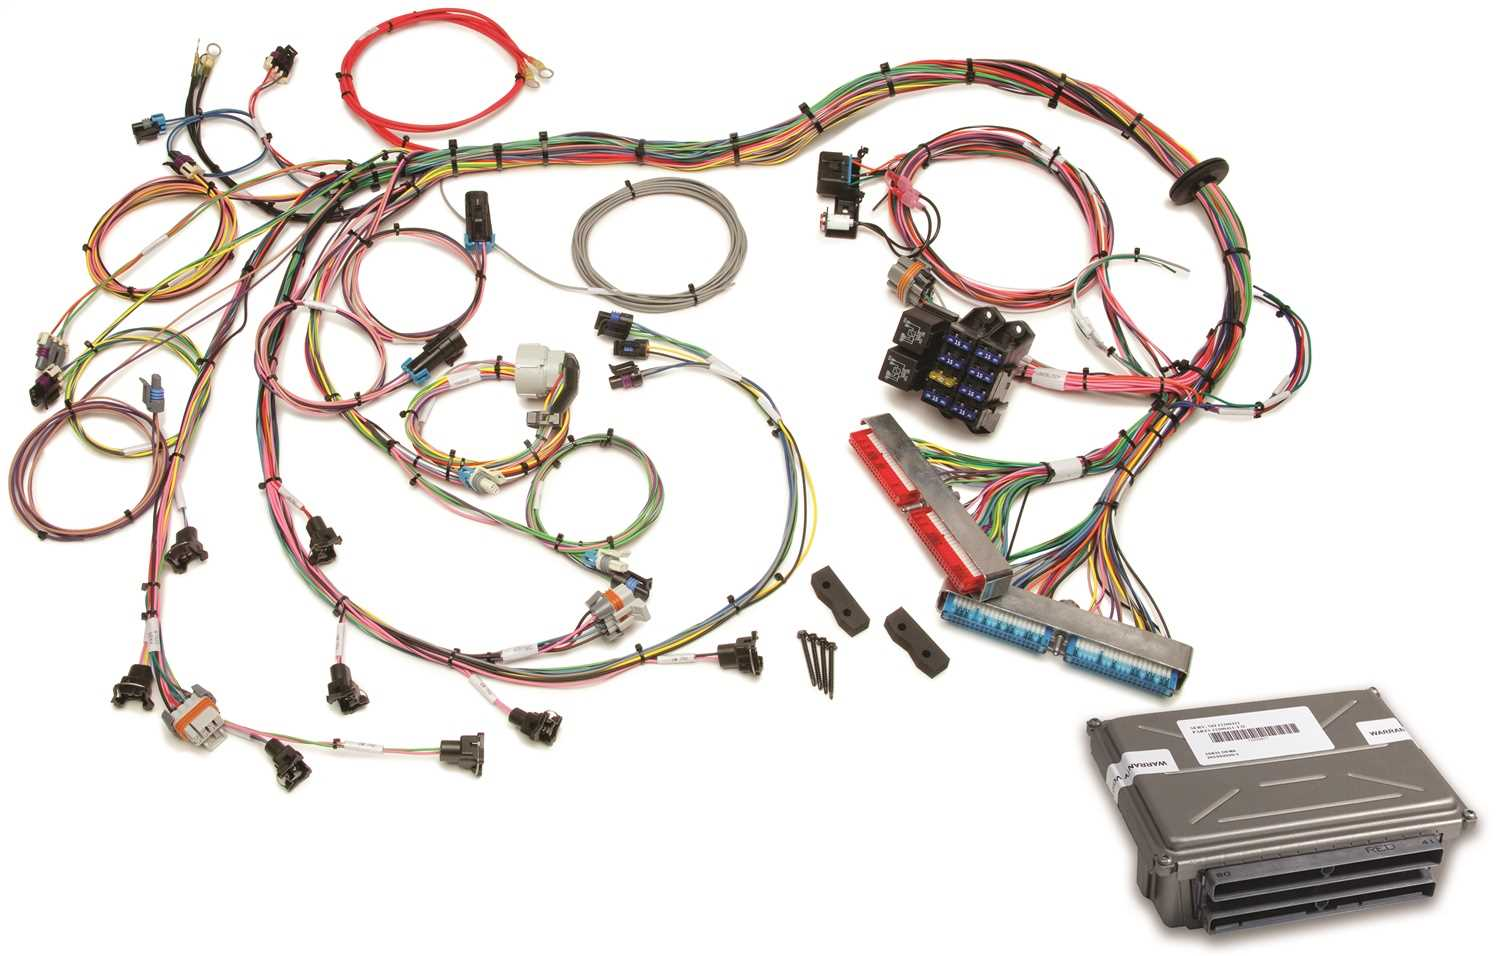 60713 Painless Wiring Fuel Injection Wiring Harness 60713 on 1972 chevy truck harness, radio harness, painless fuse box, front lead dog harness, indestructible dog harness, chevy tbi harness, rover series 3 diesel harness, 5.3 vortec swap harness, bully dog harness, 5 point harness, painless engine harness, horse driving harness, racing seat harness, horse team harness, dodge ram injector harness, duraspark harness, electrical harness, ford 5.0 fuel injection harness, fuel injector harness, car harness,